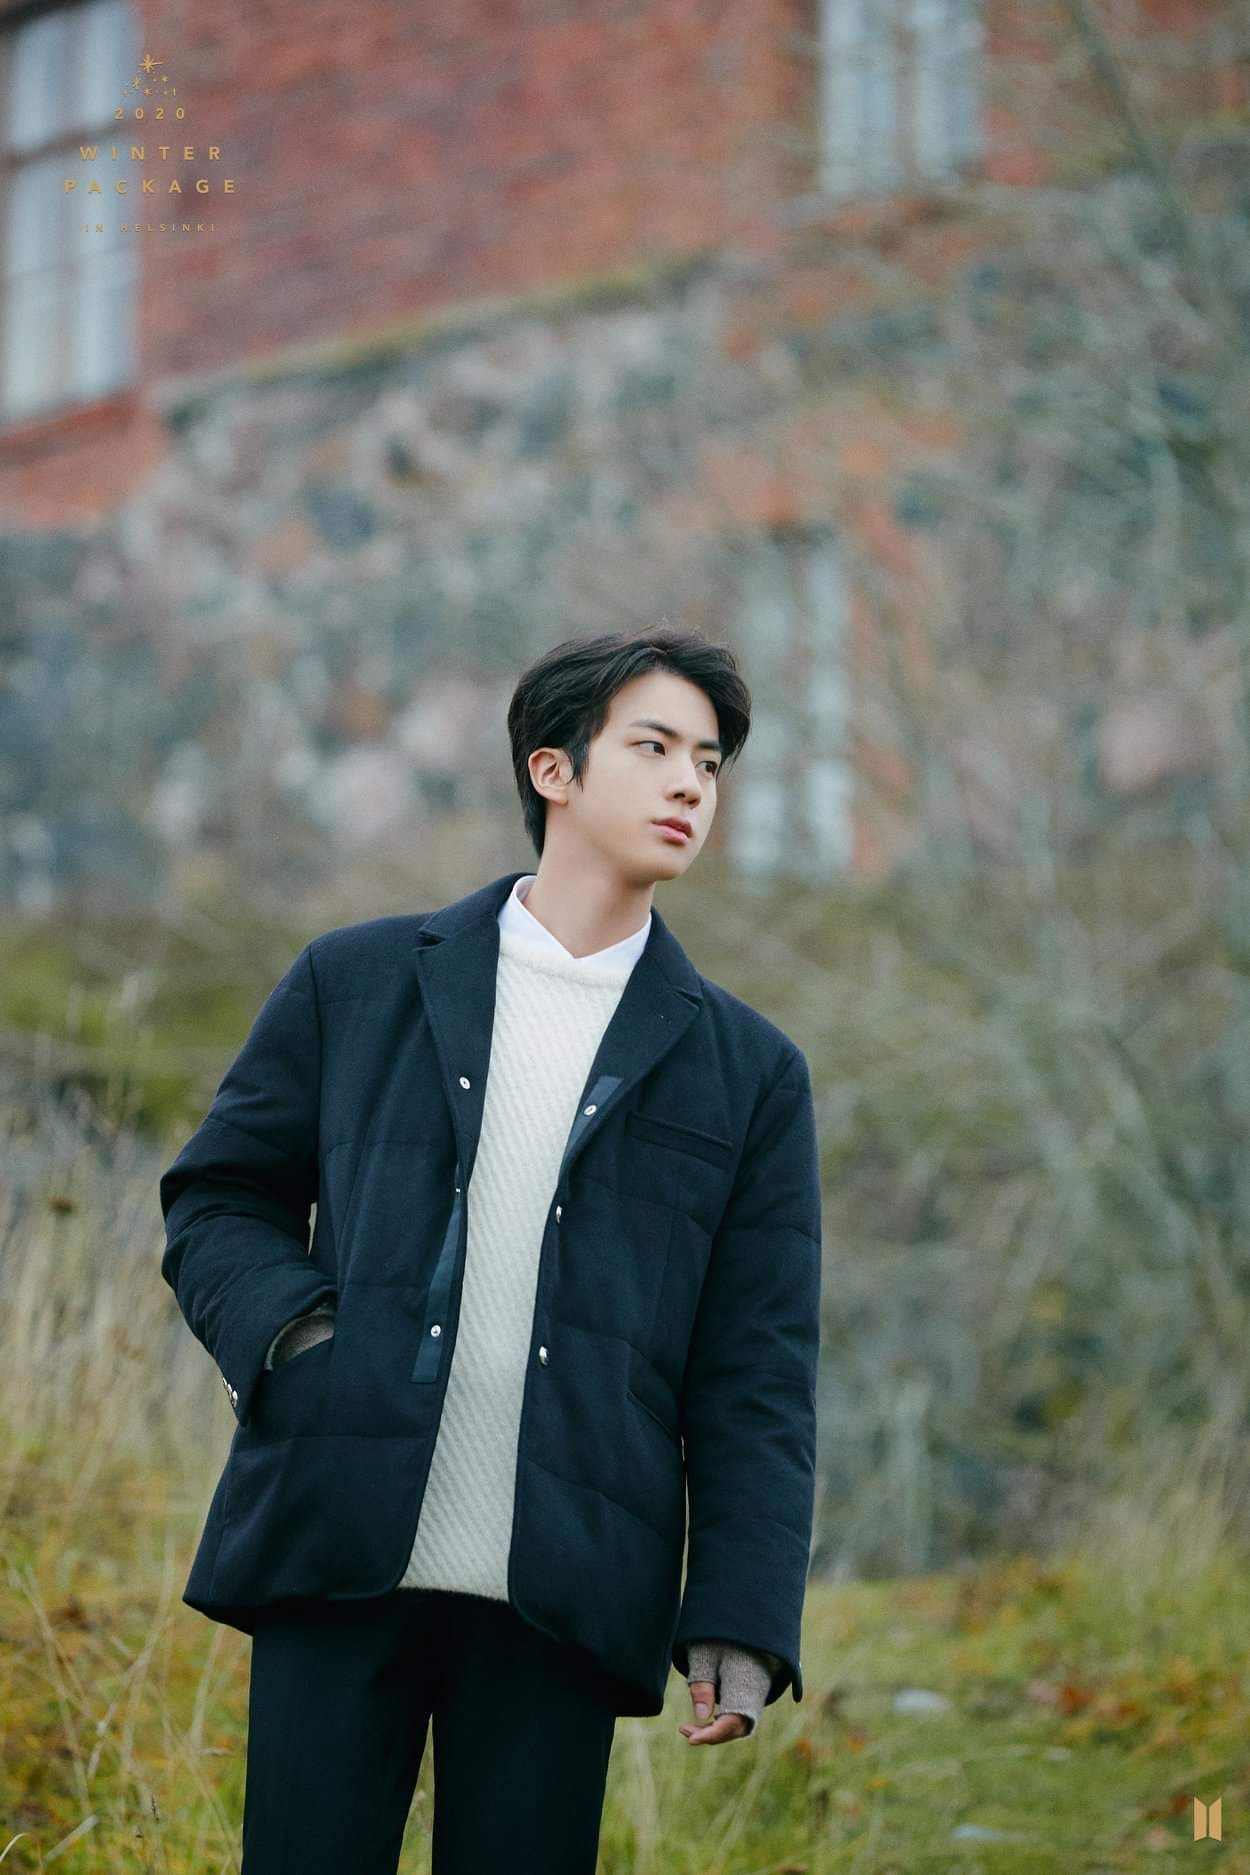 Bts Jin 2020 Wallpapers Top Free Bts Jin 2020 Backgrounds